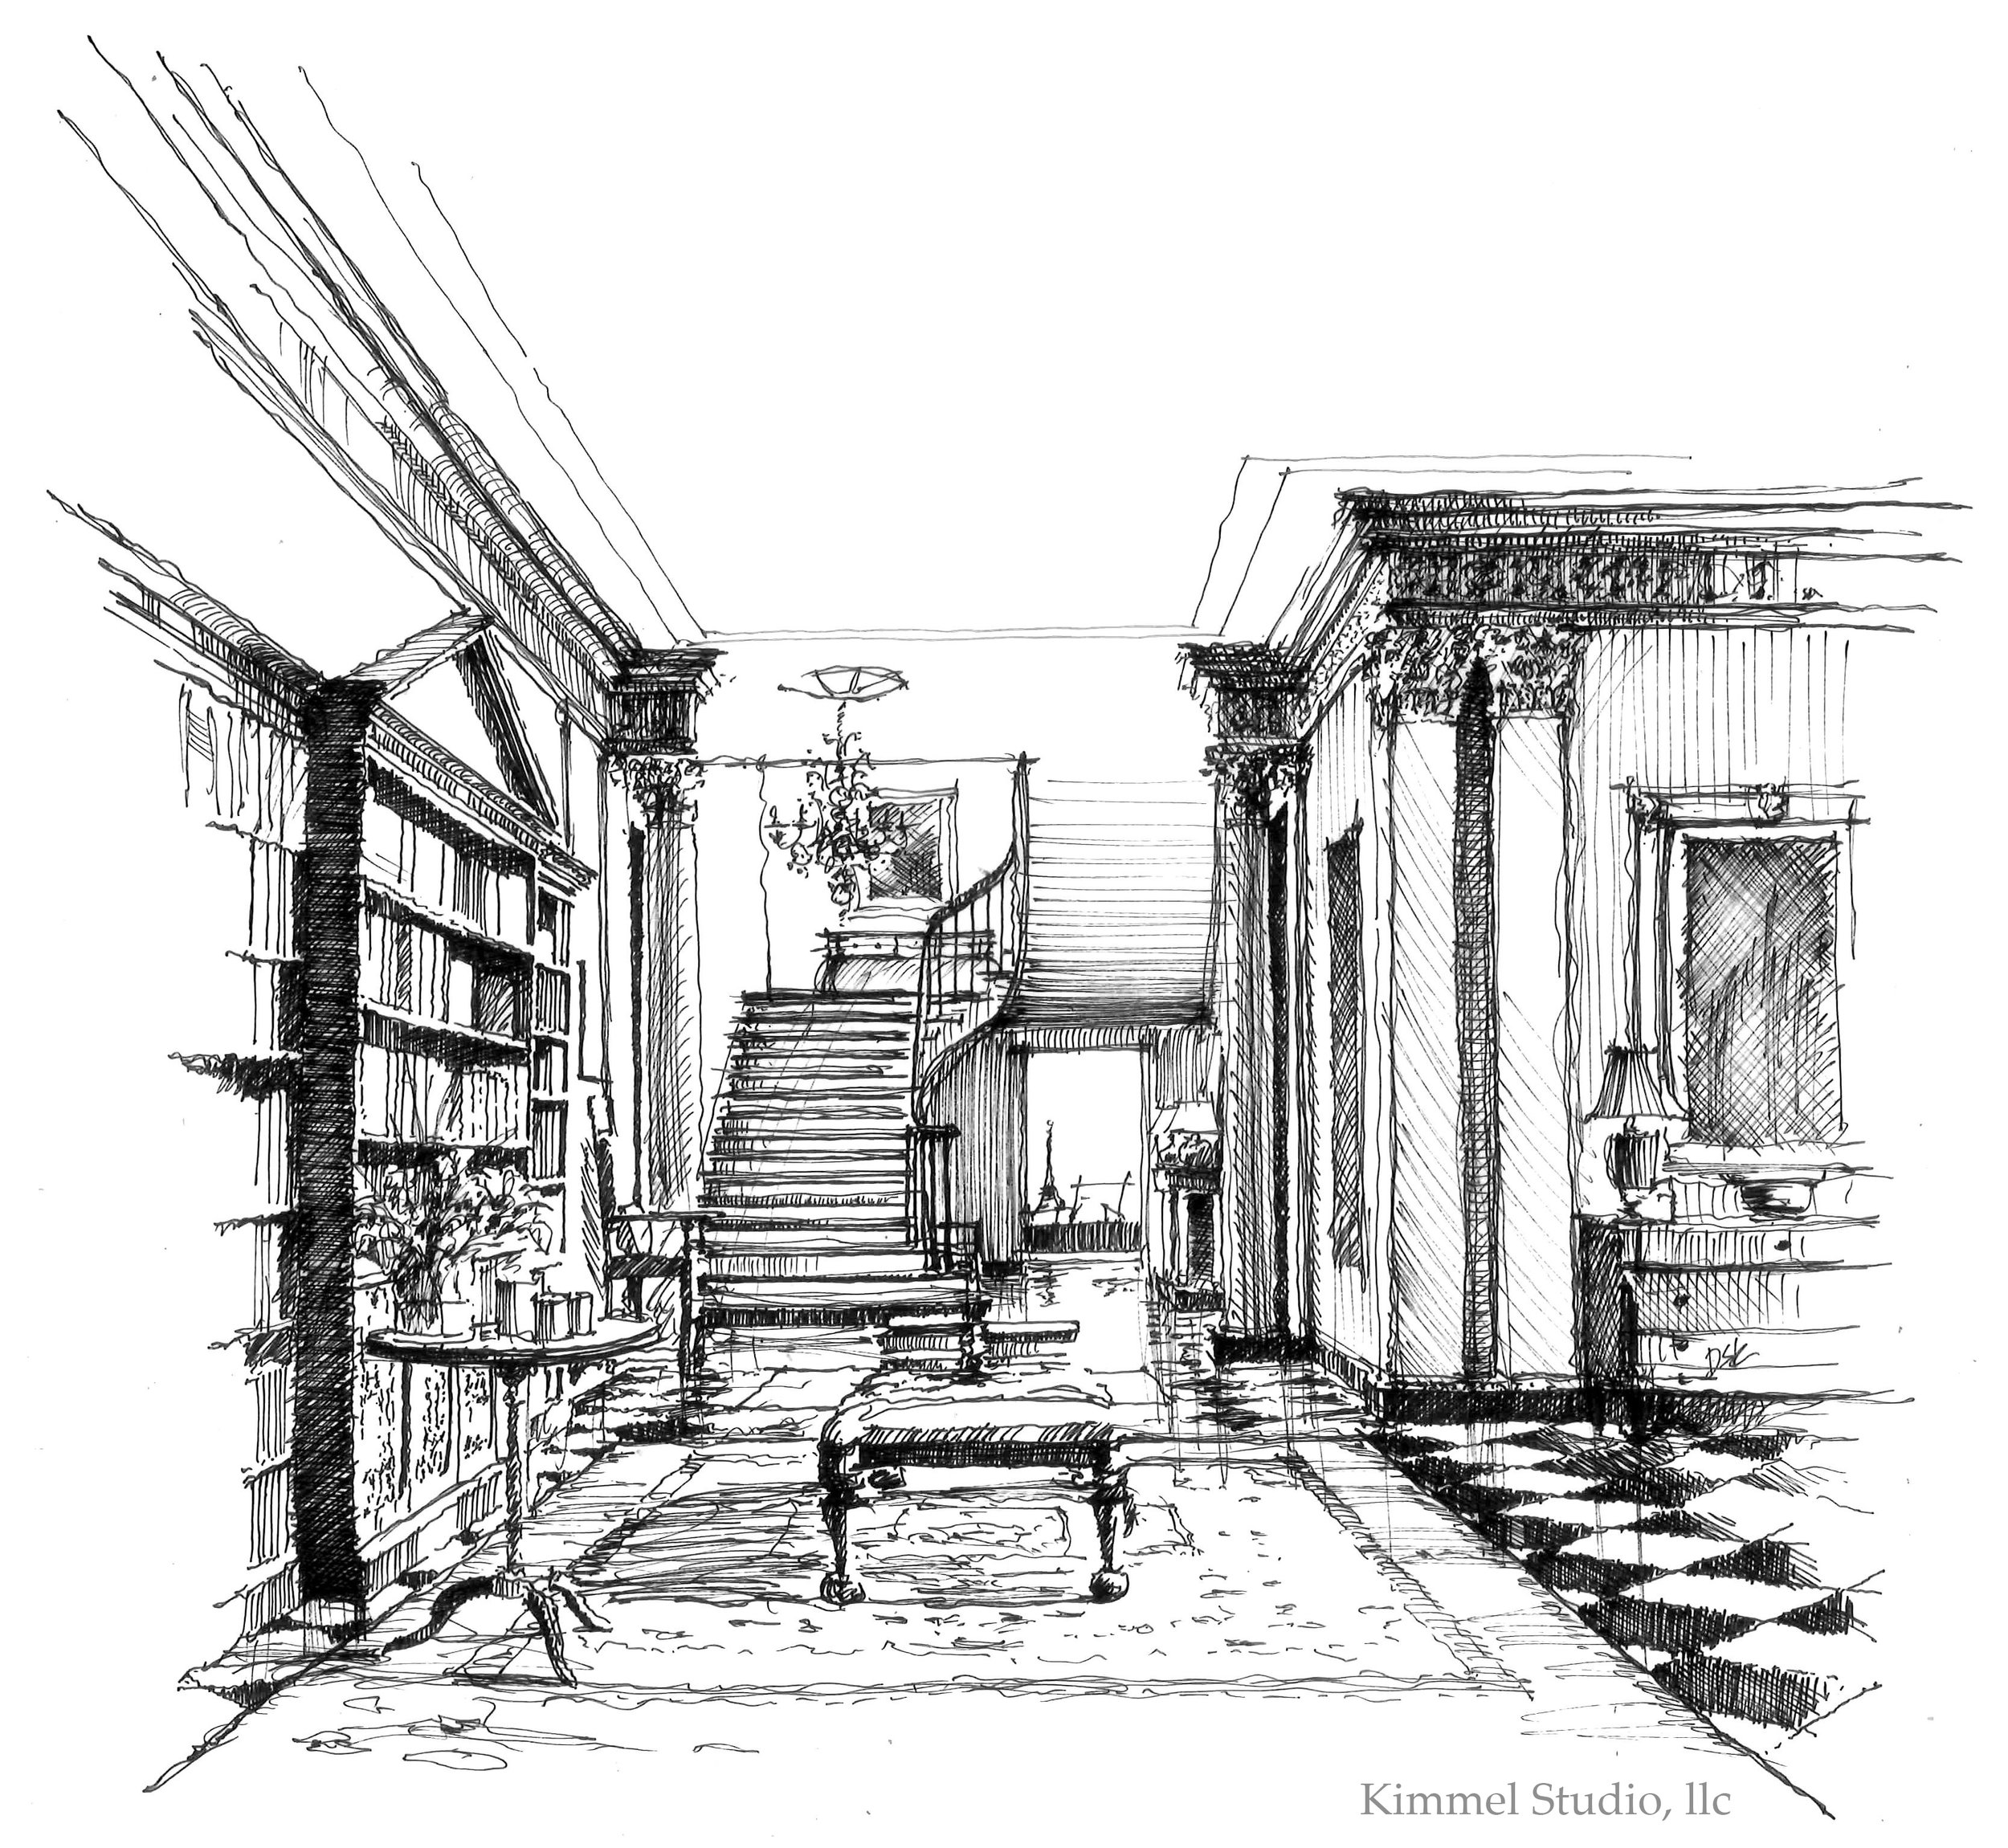 Architect Devin Kimmel hand draw this neo-classical architectural design.